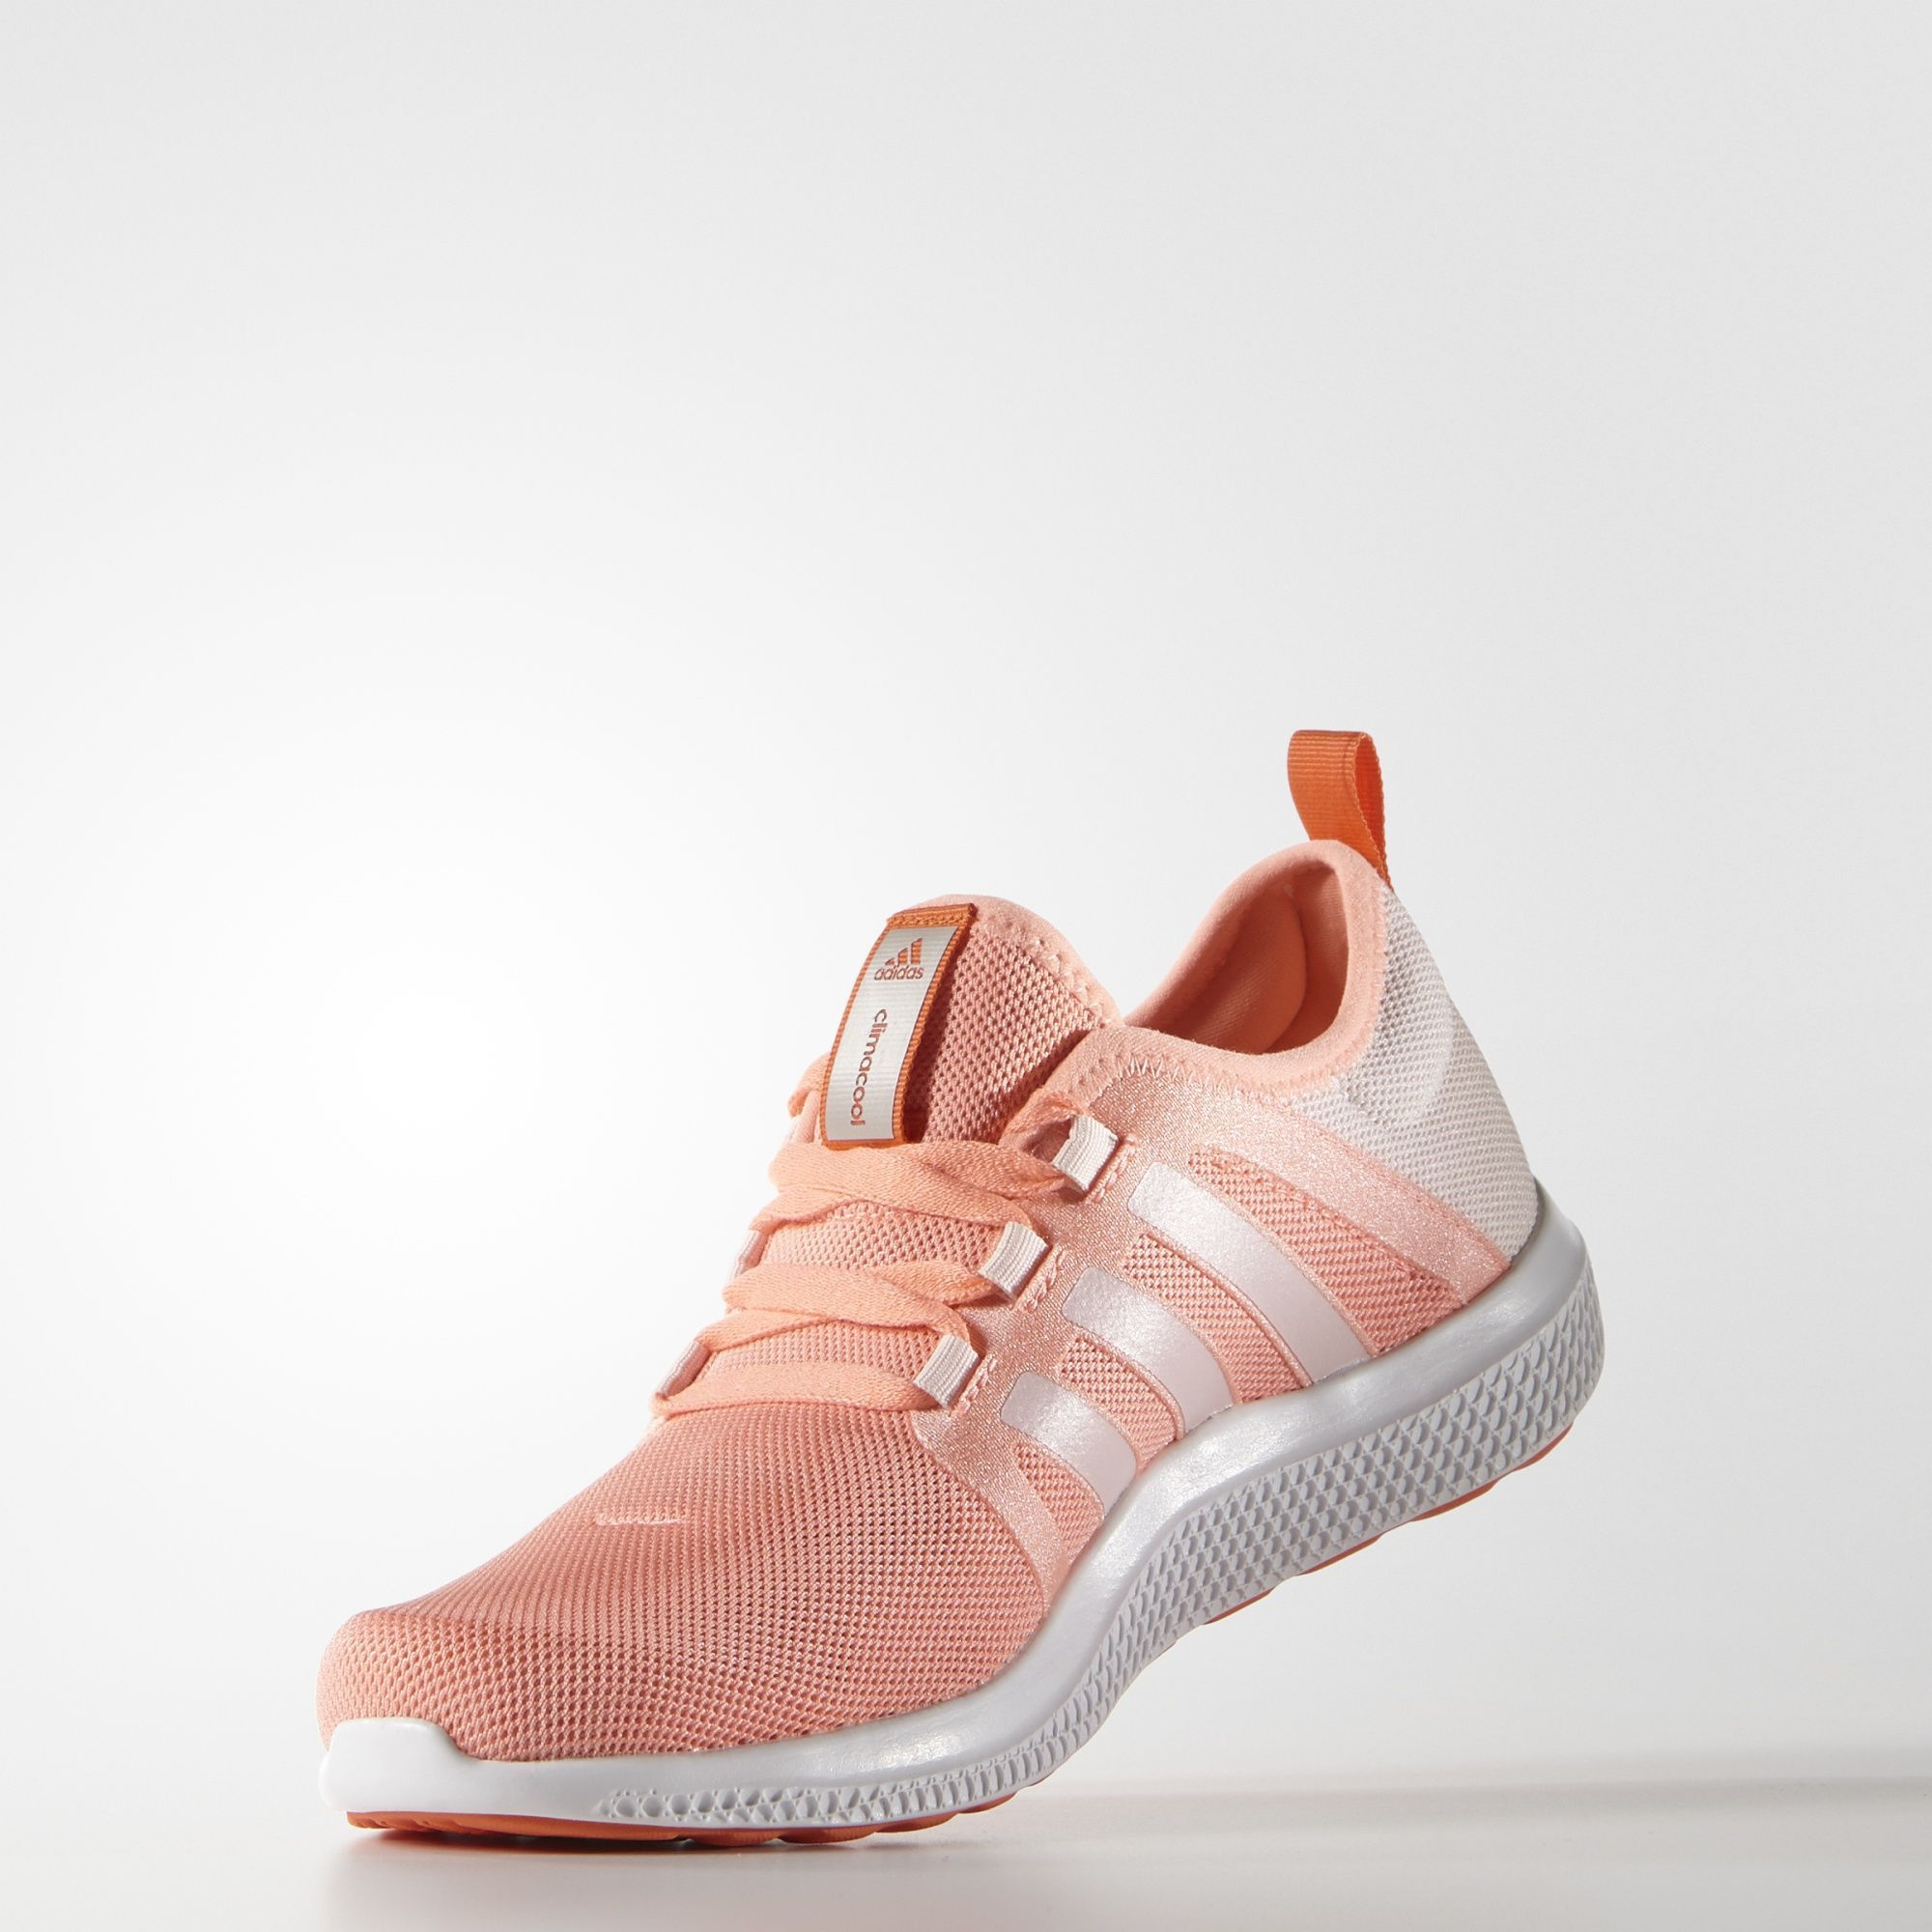 adidas climacool shoes womens pink